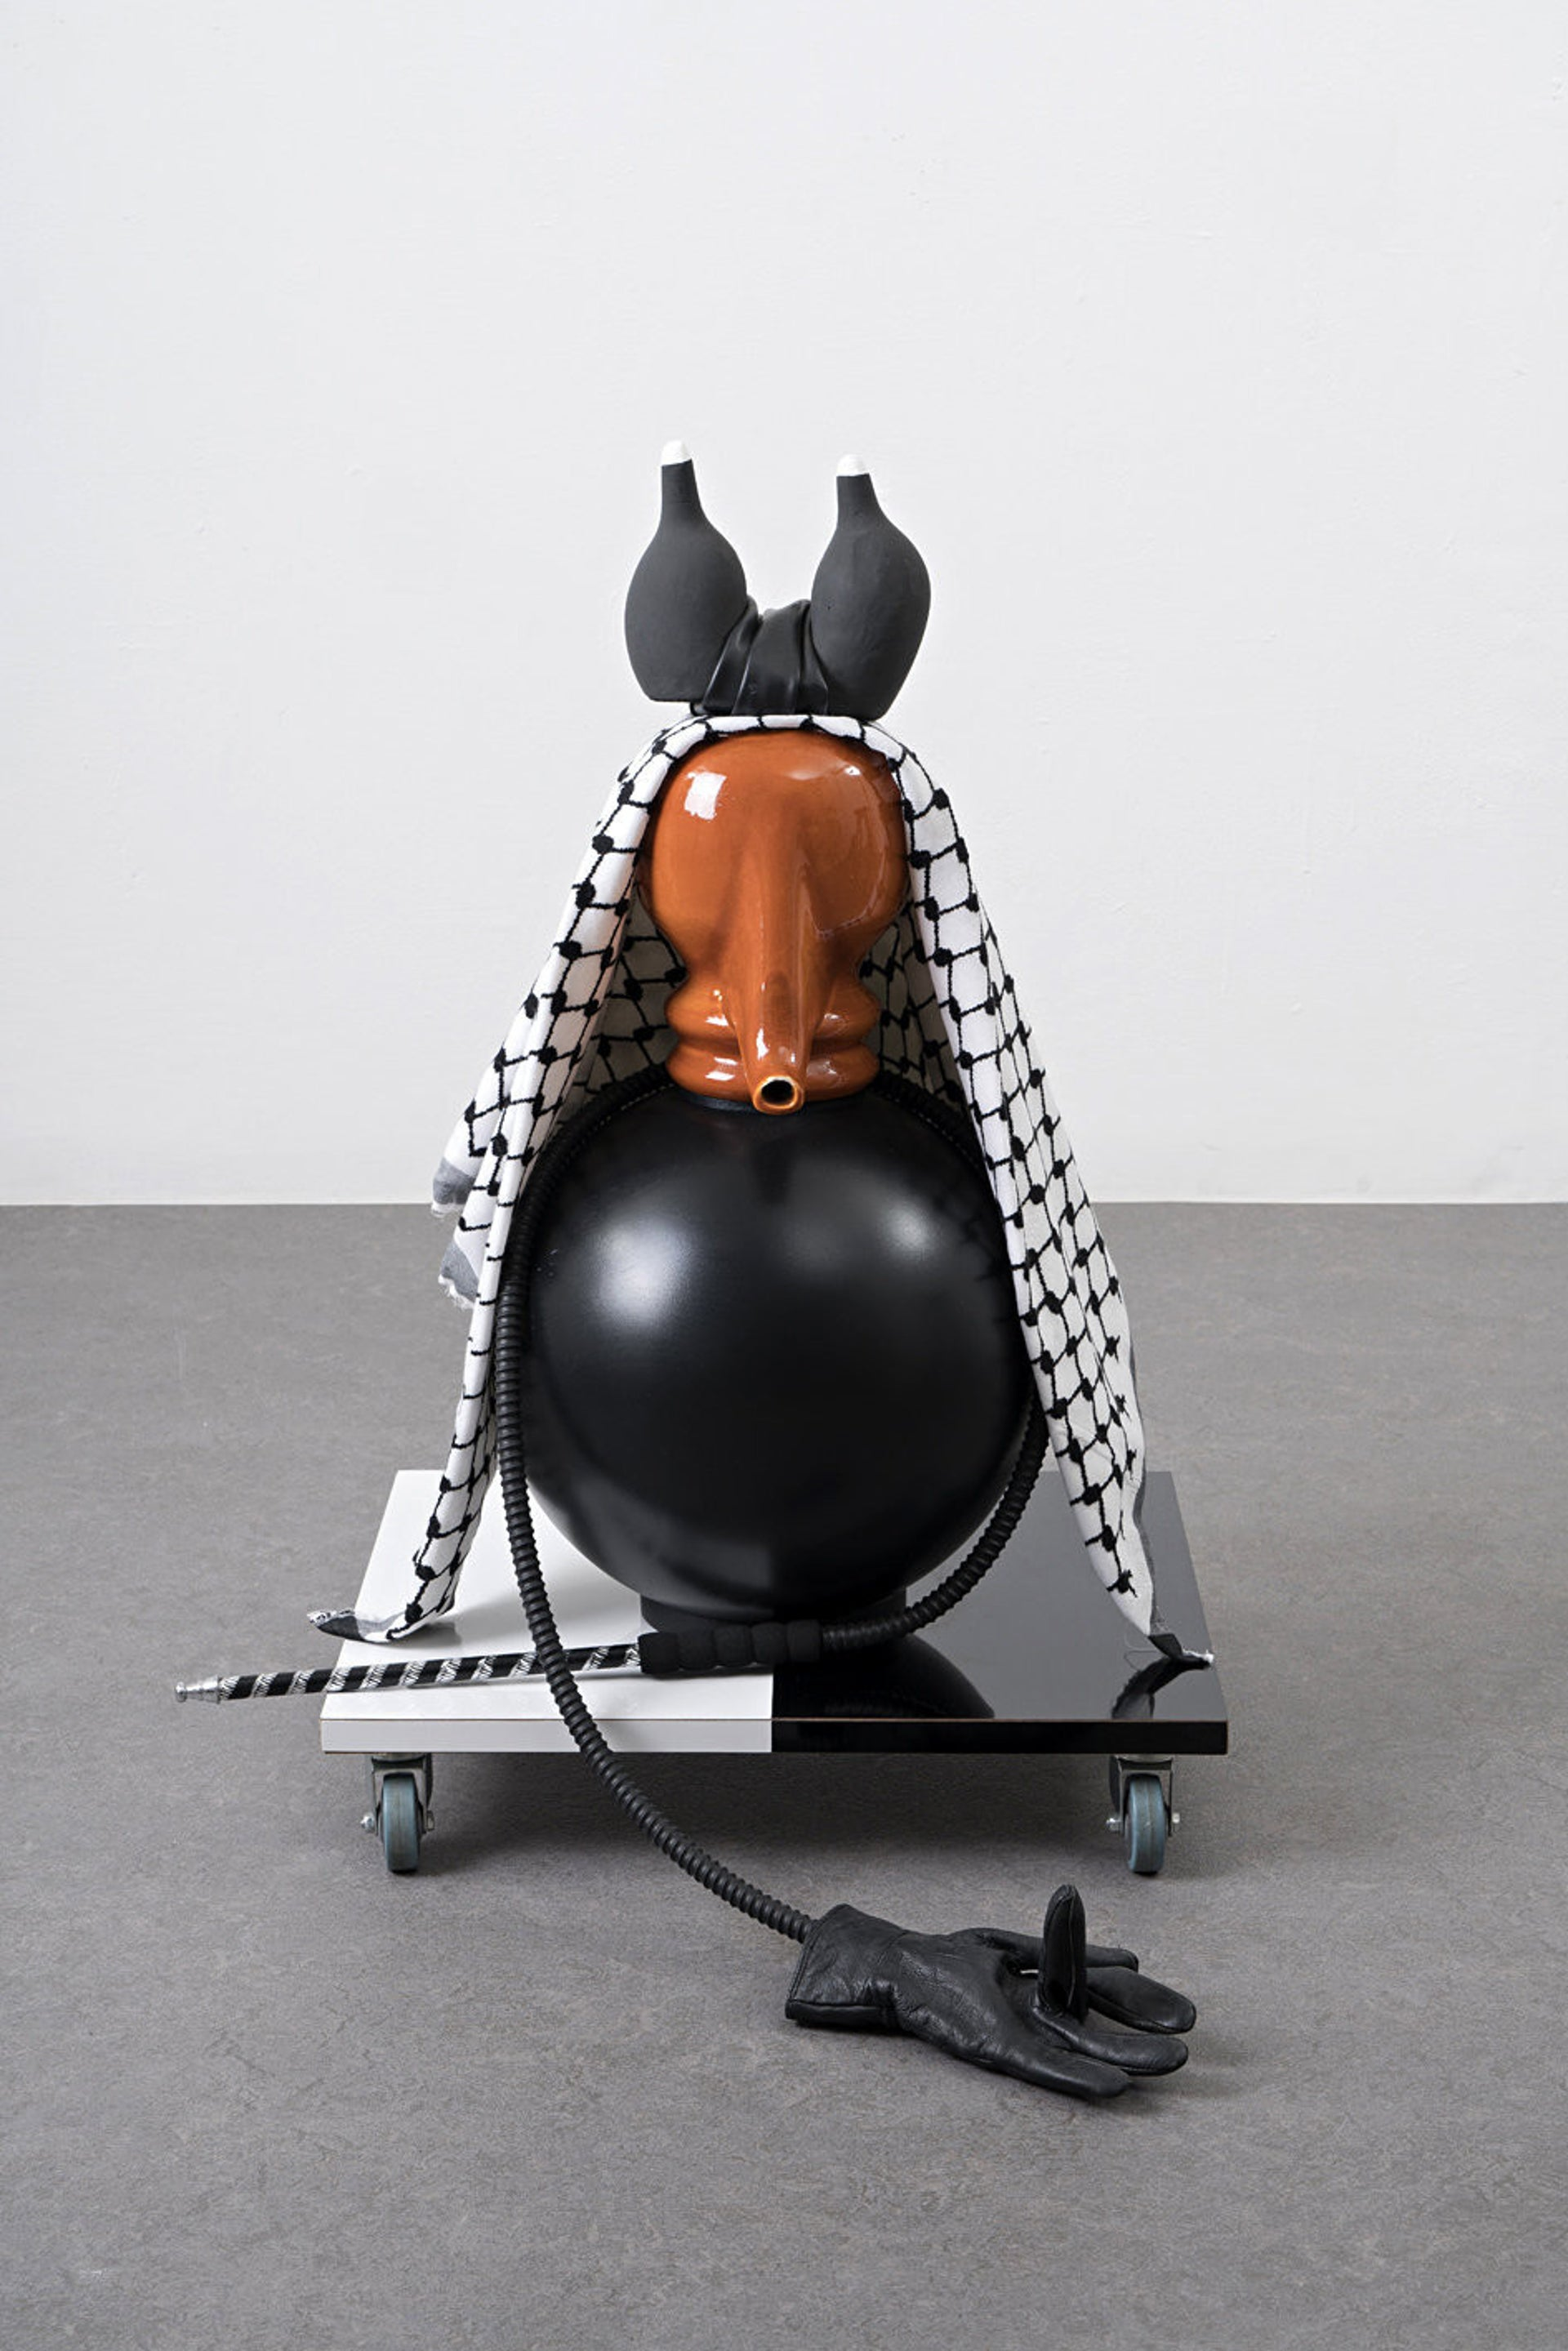 Another piece in the exhibition is a jug topped by a kaffiyeh. The jug was once in the home of Nadia Cohen, the widow of Eli Cohen, the Israeli spy executed in Syria in 1965.